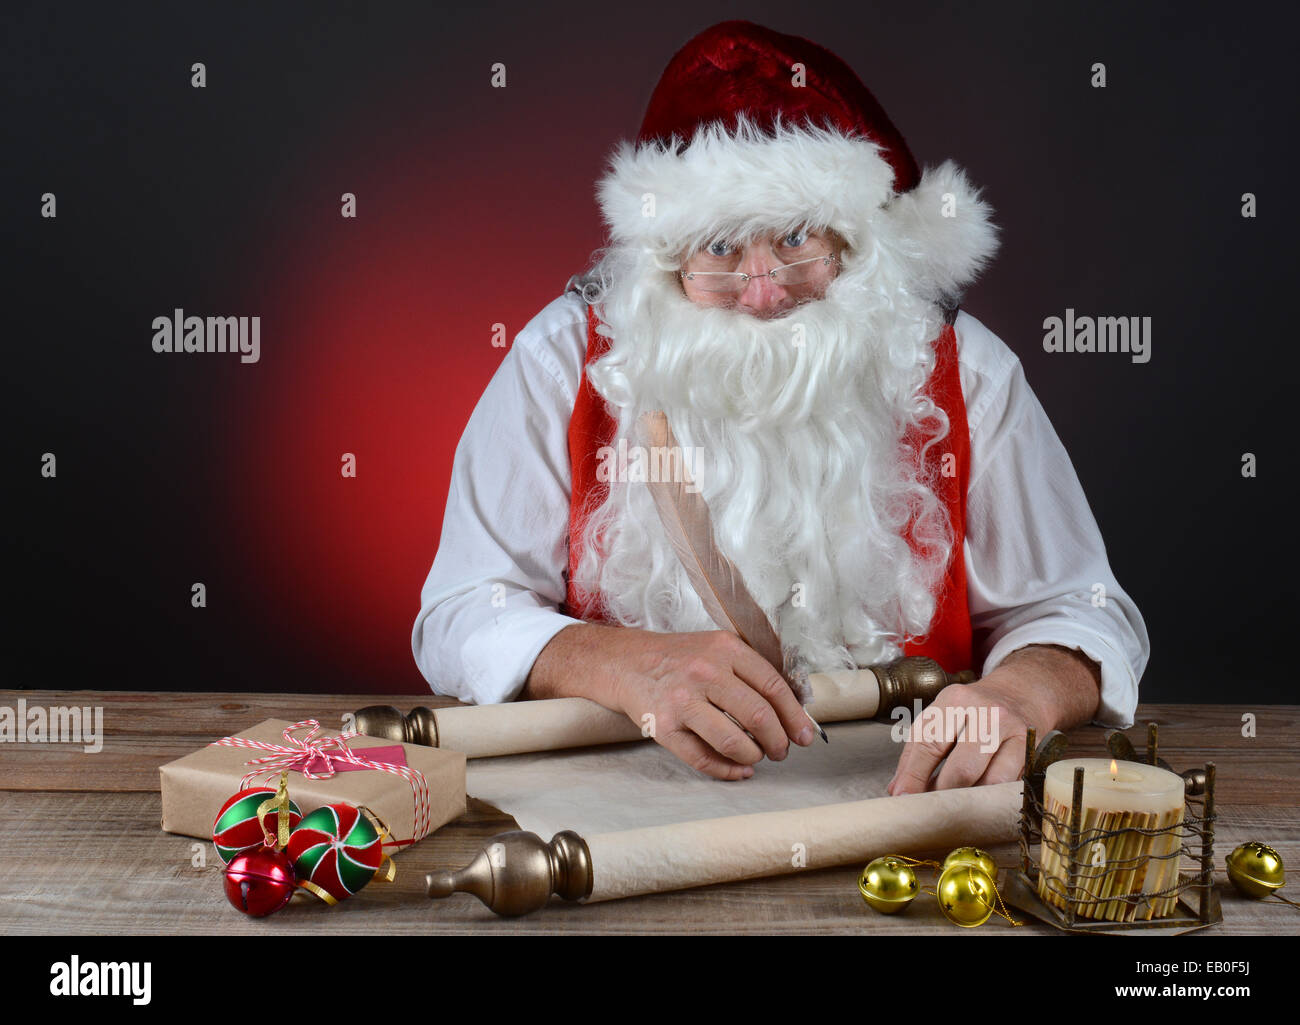 santa claus checking his naughty and nice list on a scroll of